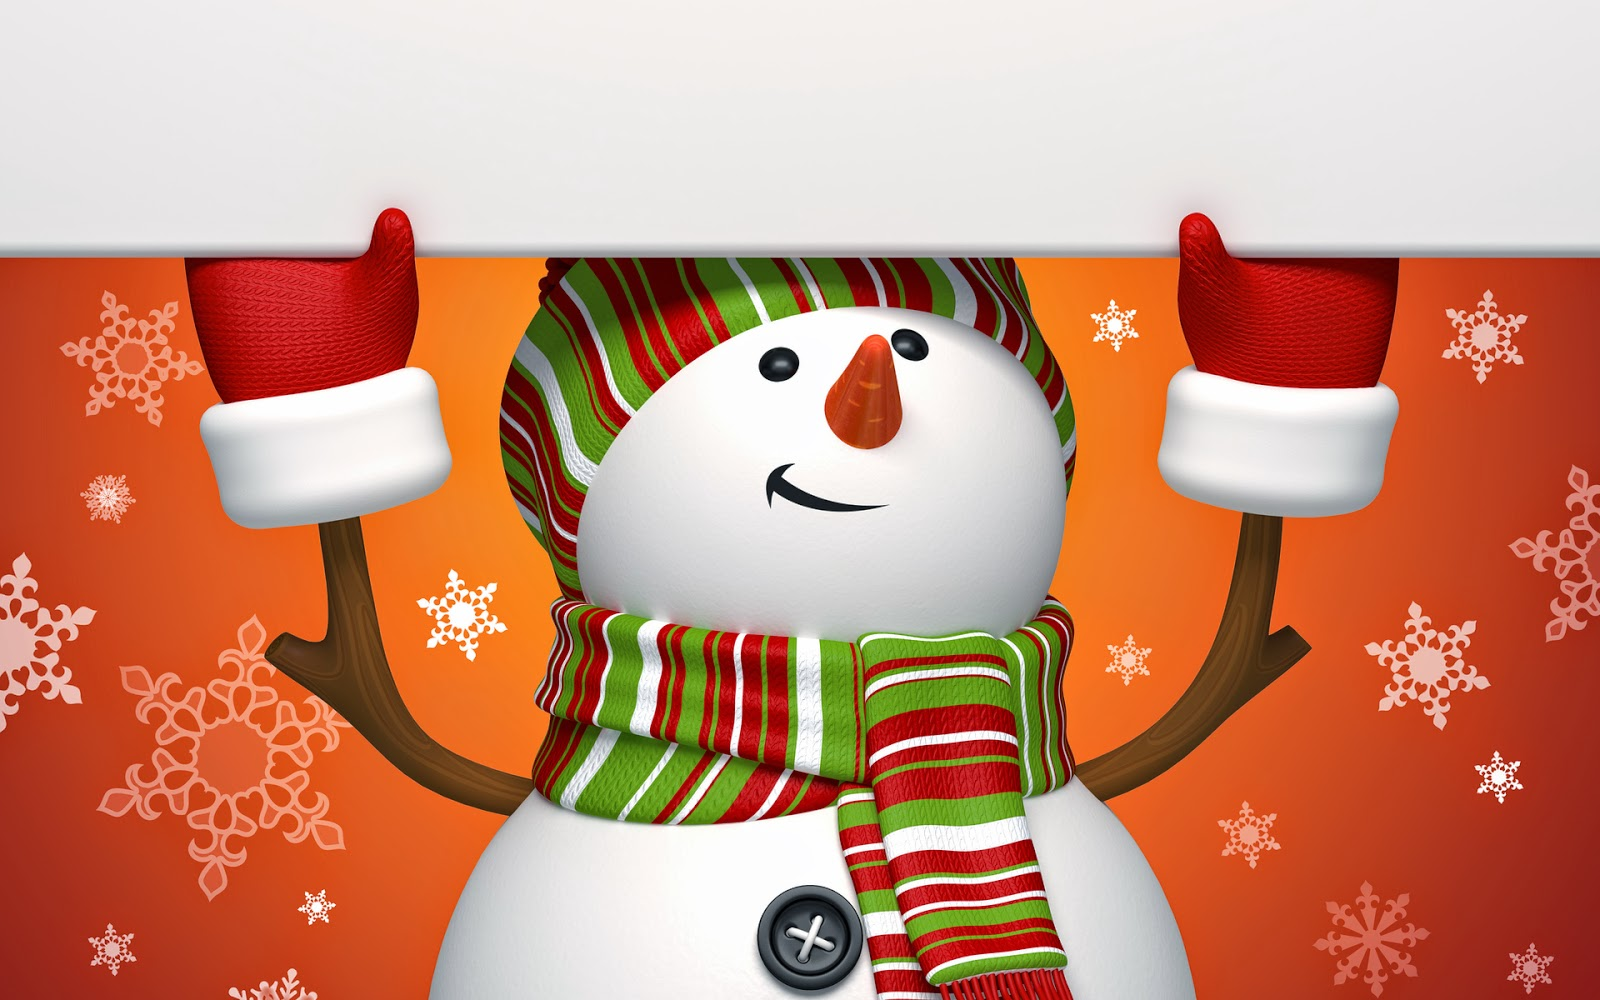 Christmas-snowman-clipart-image-with-wishes-board-template-.jpg